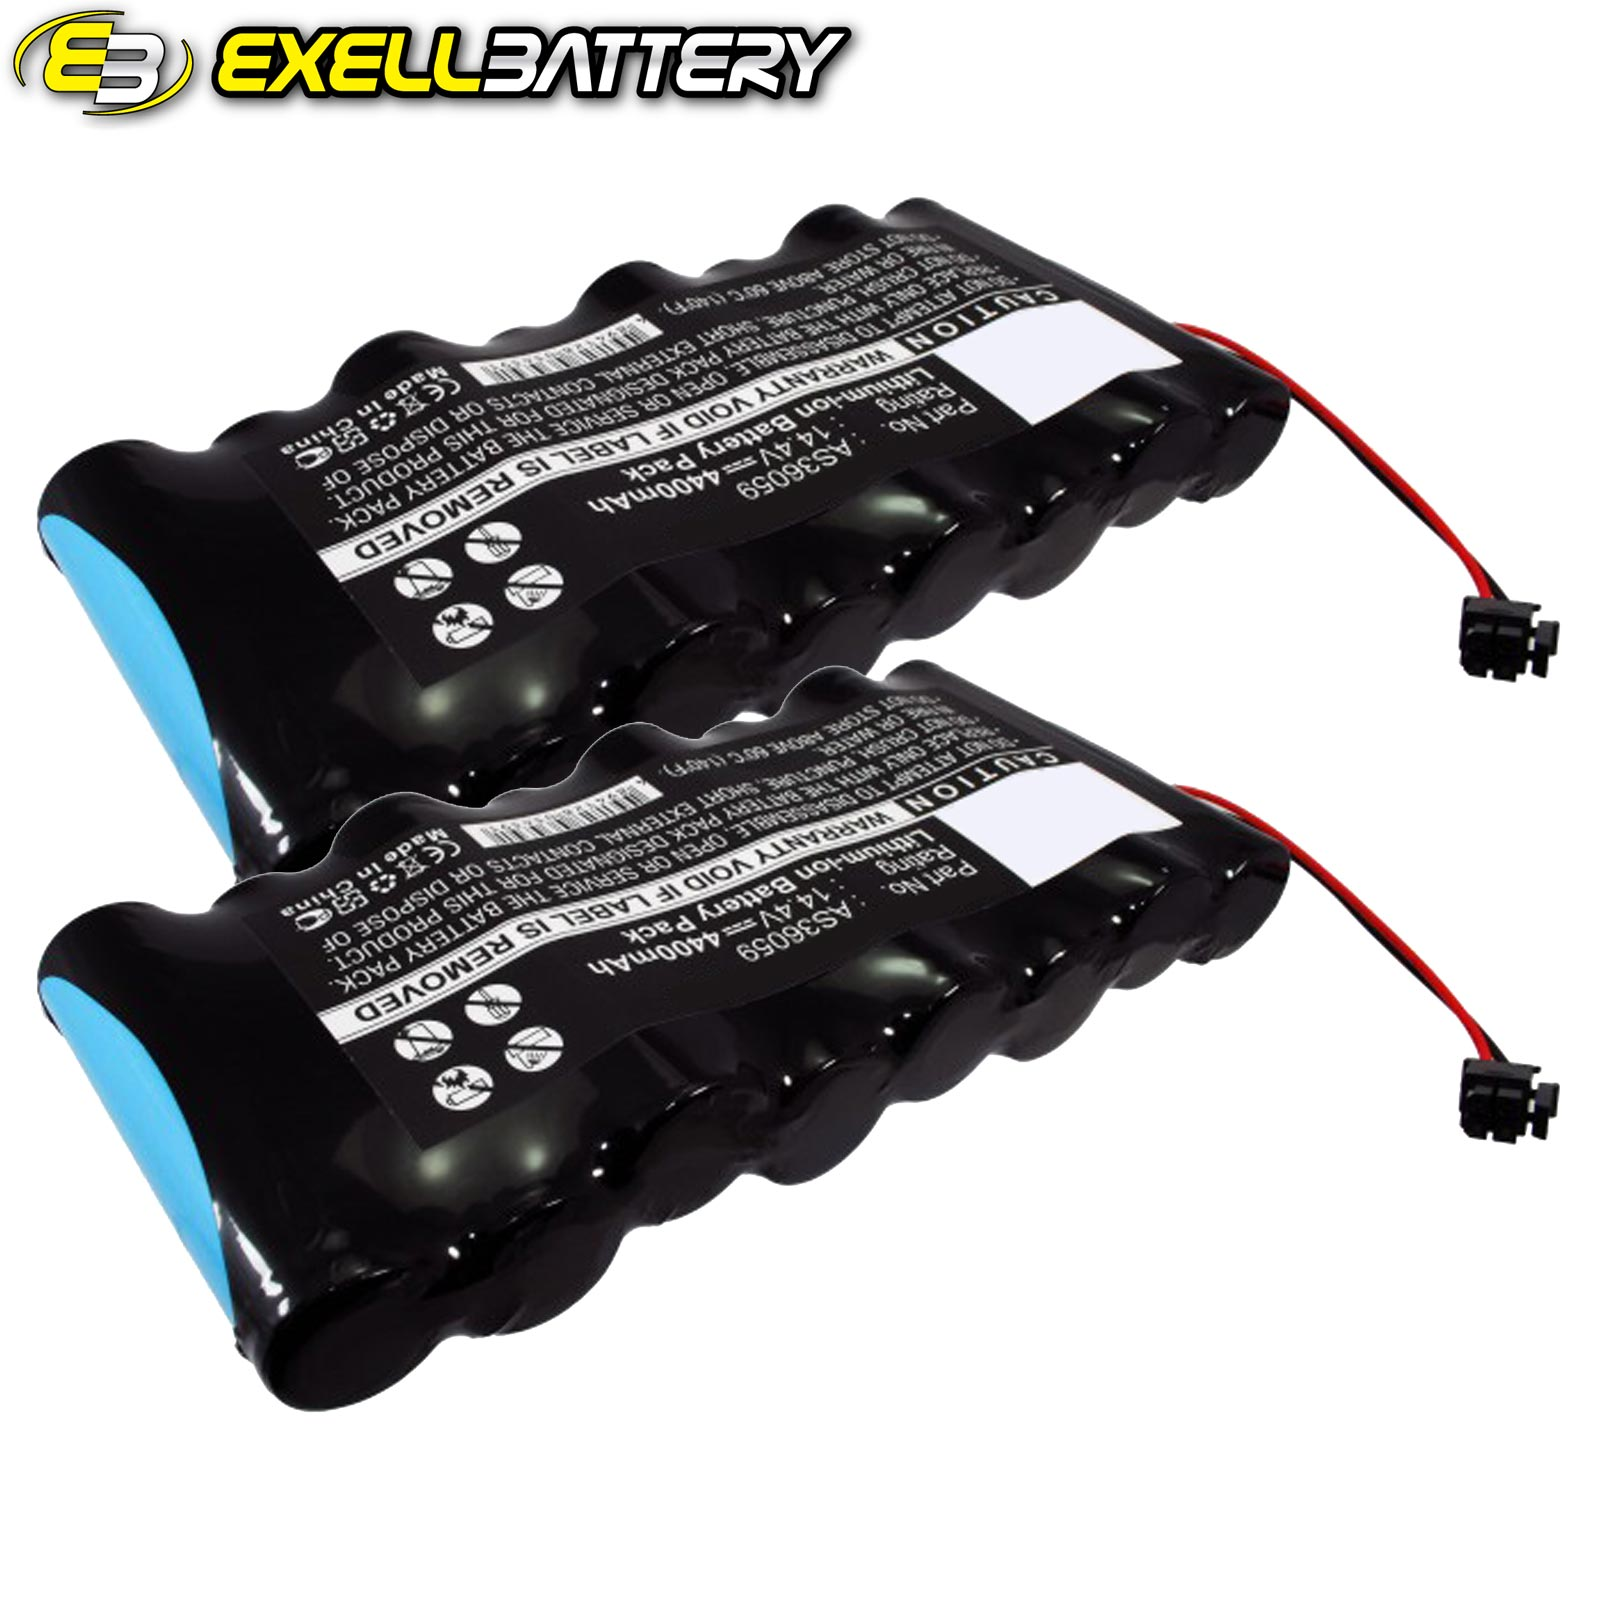 2x 14.4V Medical Batteries For Siemens AS36059 MS14234 MS14490 Fits Draeger by Exell Battery